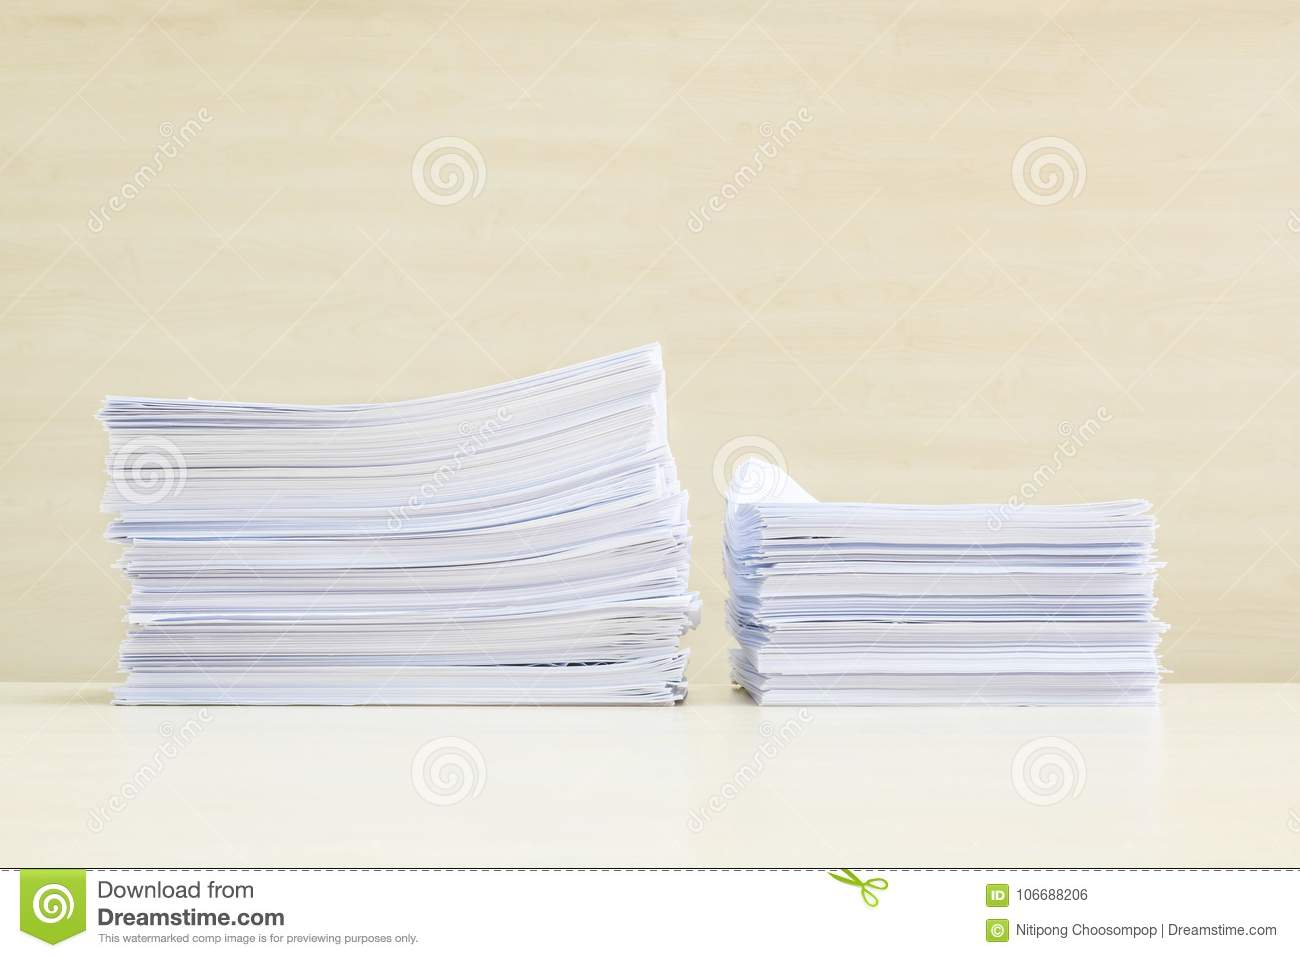 Closeup pile of work paper on blurred wooden desk and wall textured background in the meeting room under window light , hard work